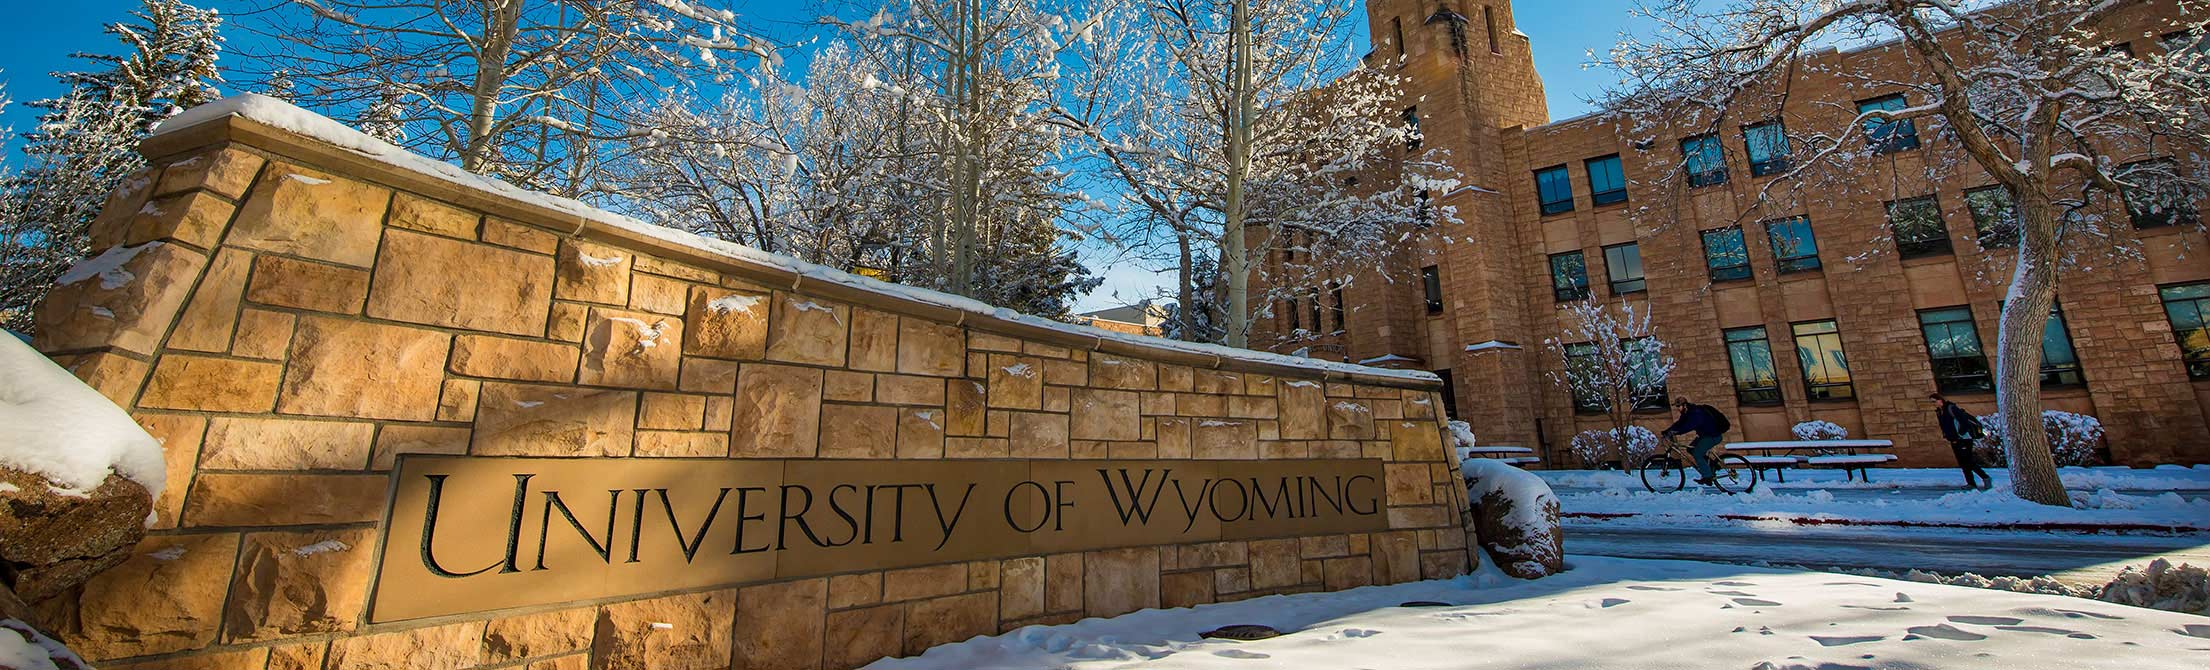 University of Wyoming sign with snow